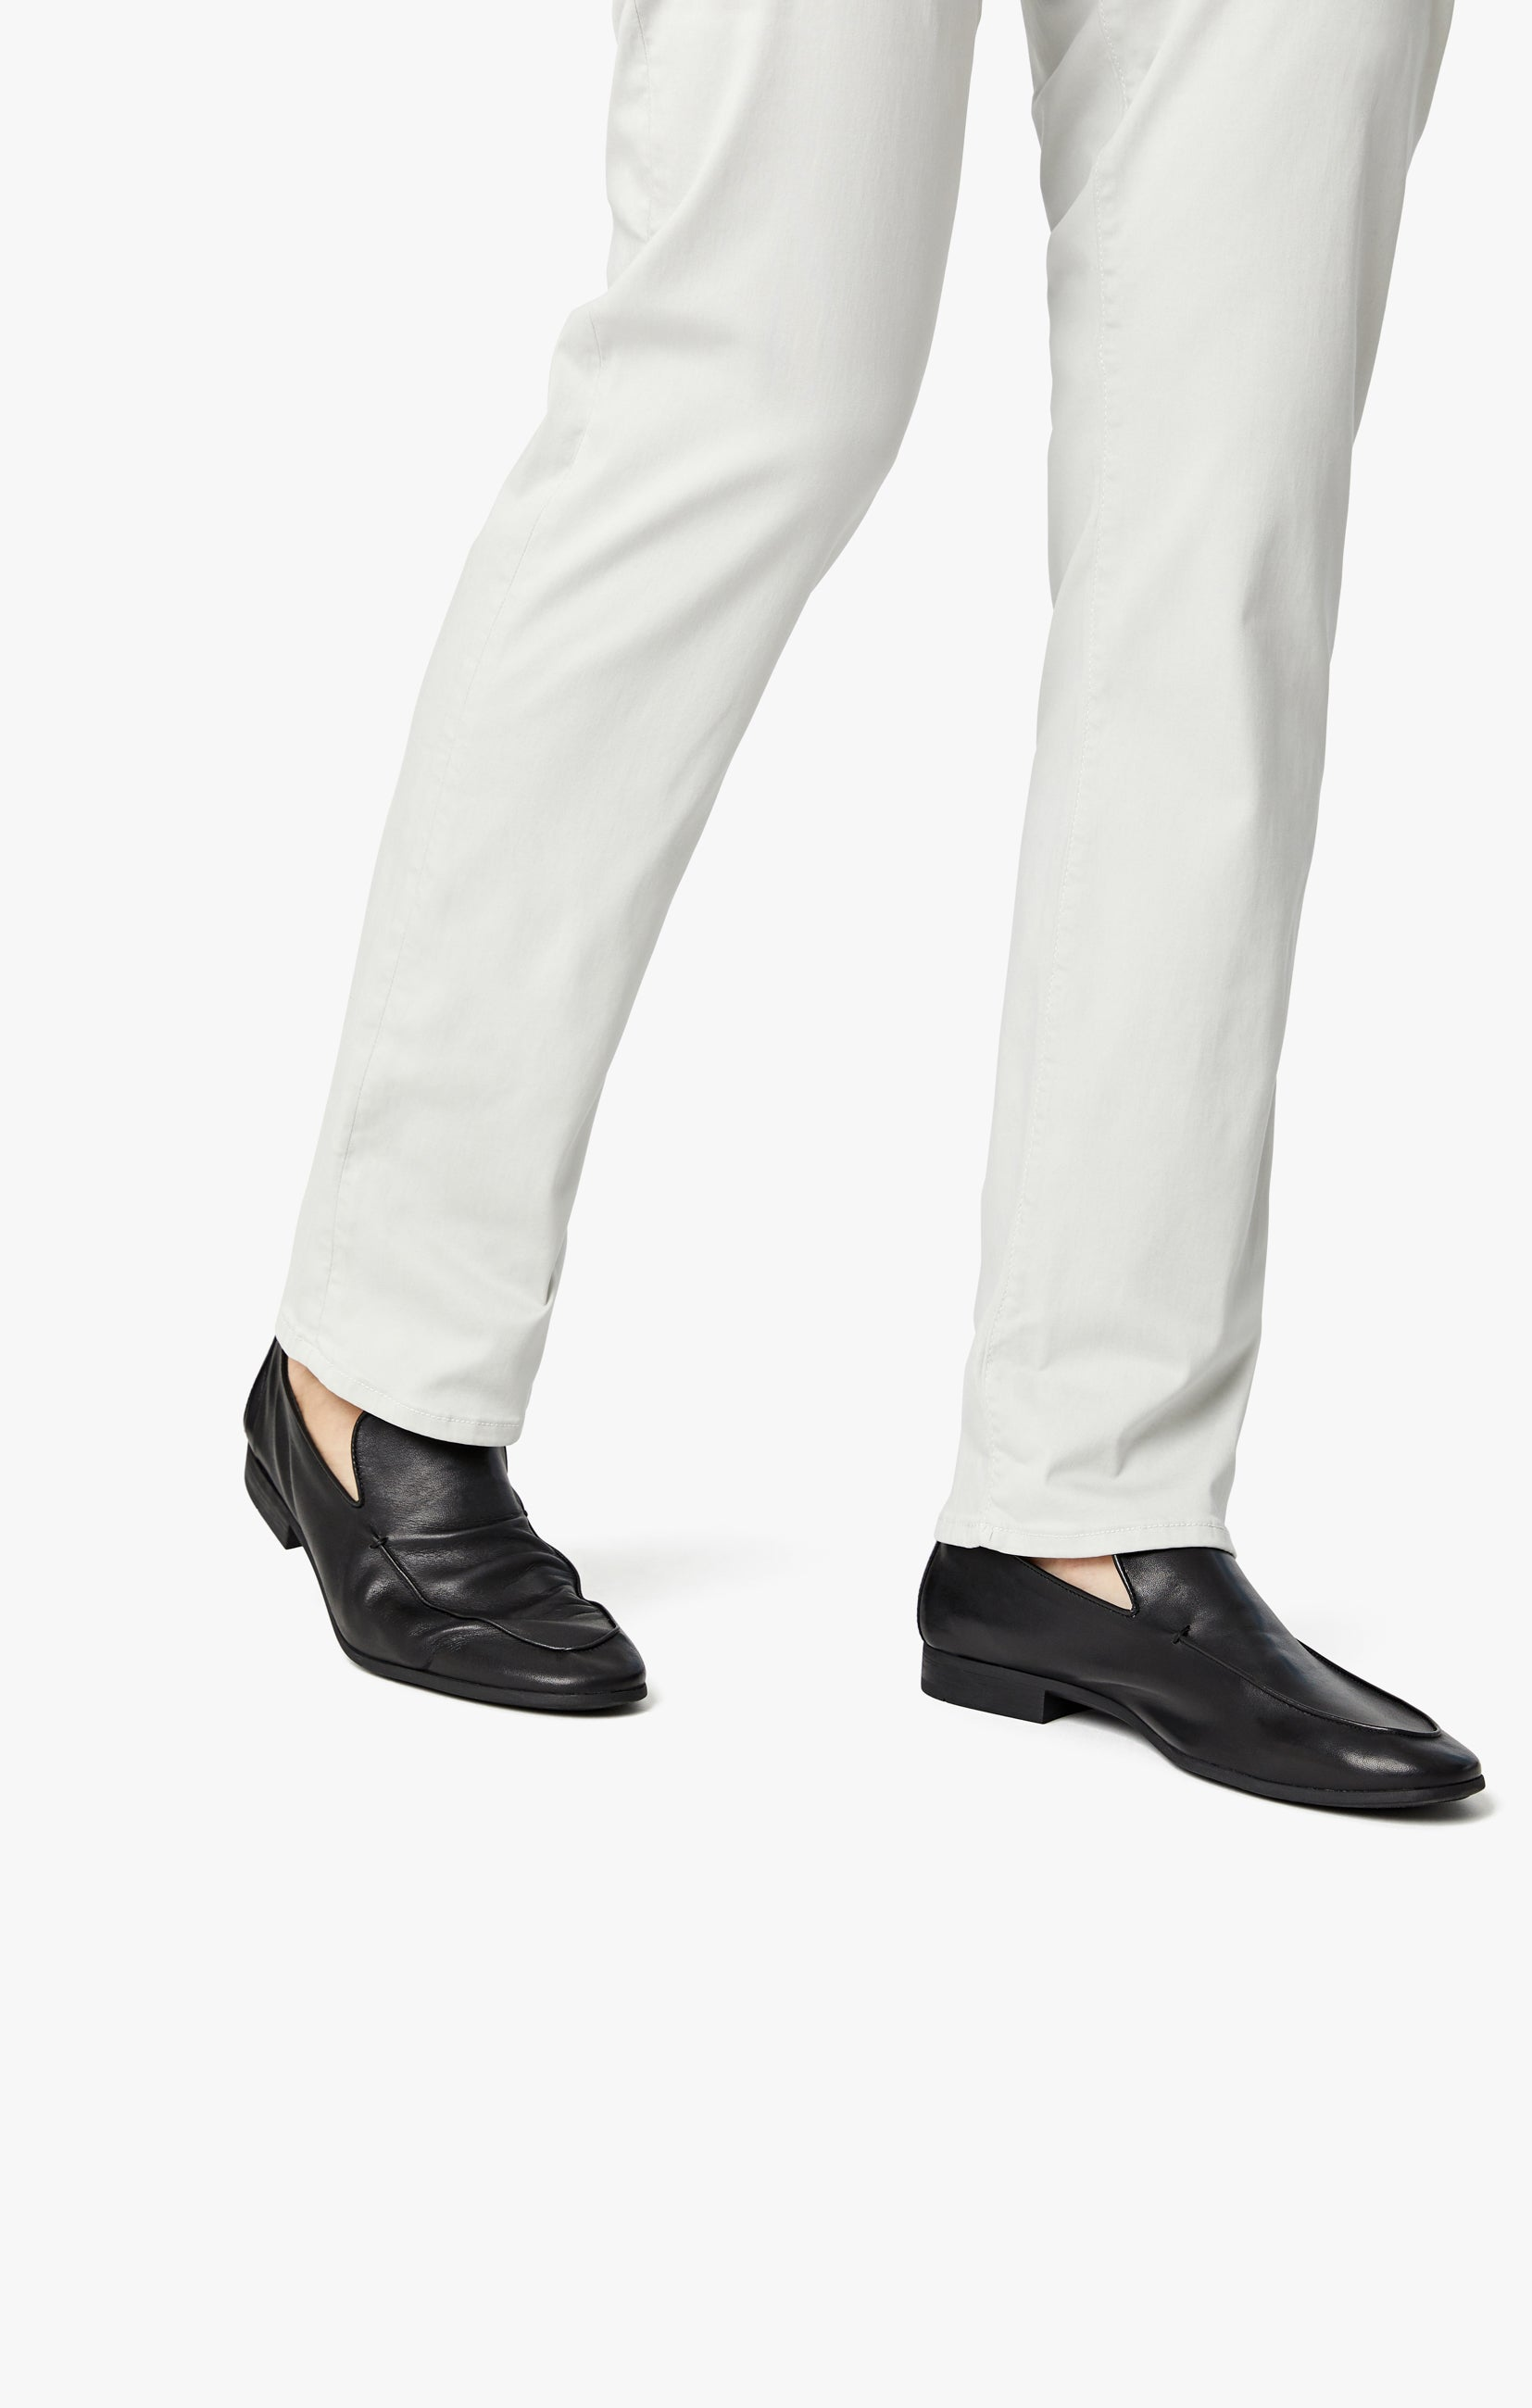 Courage Straight Leg Jeans in Bone Twill Image 6